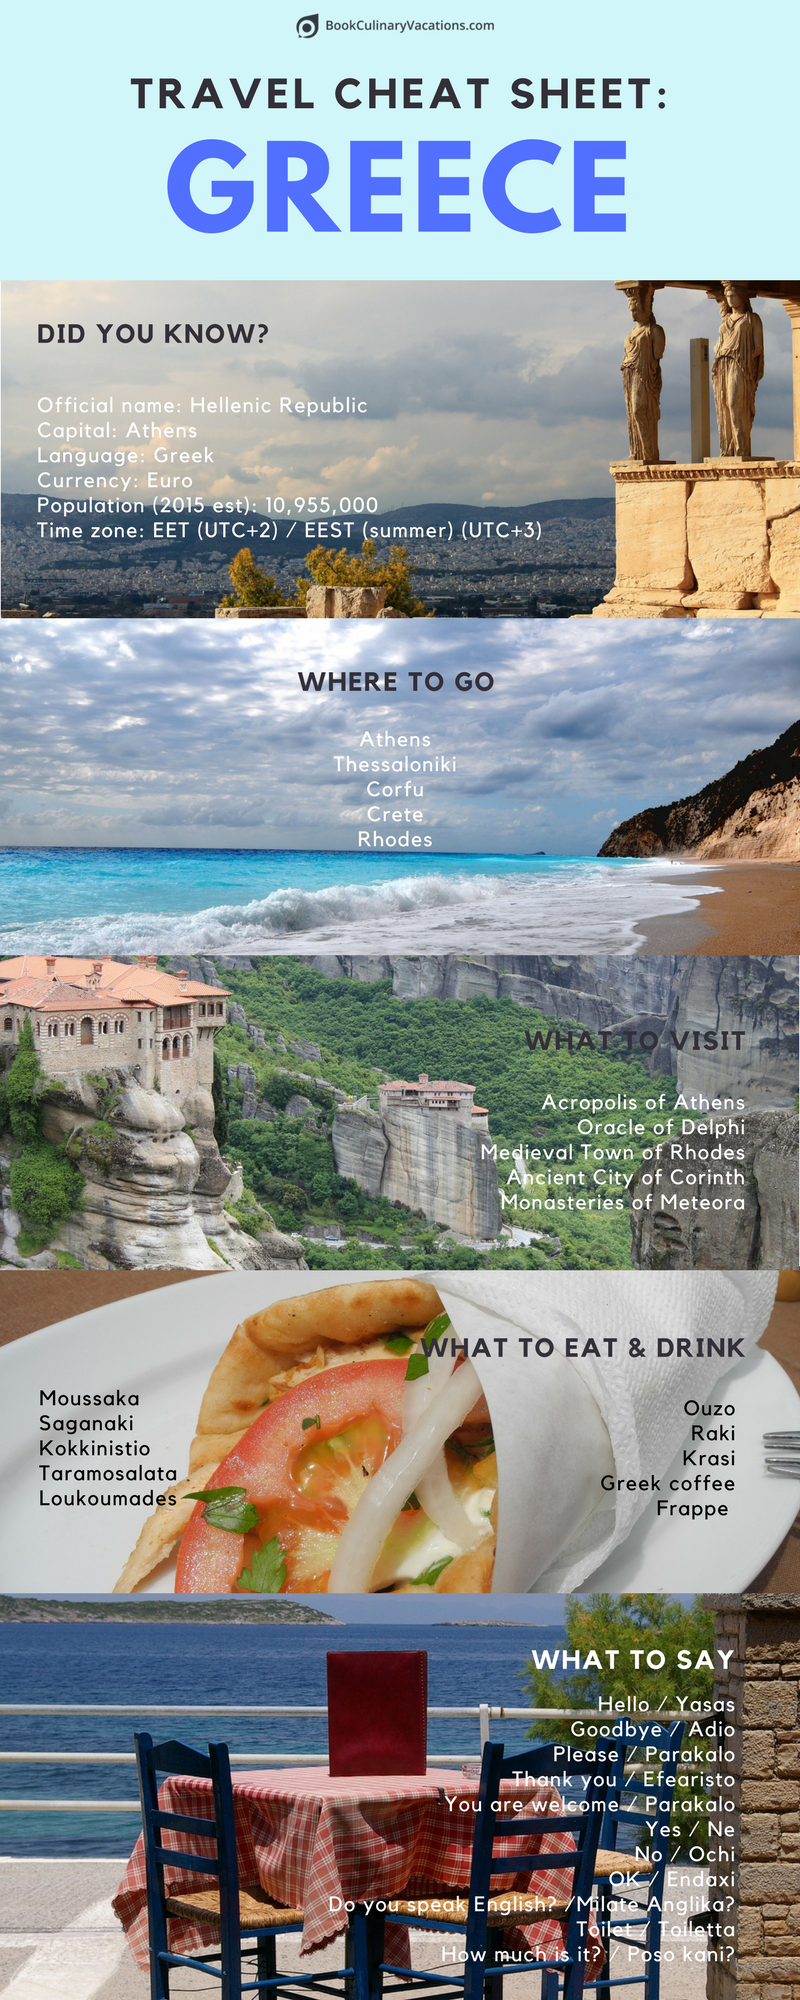 Travel Cheat Sheet : Greece